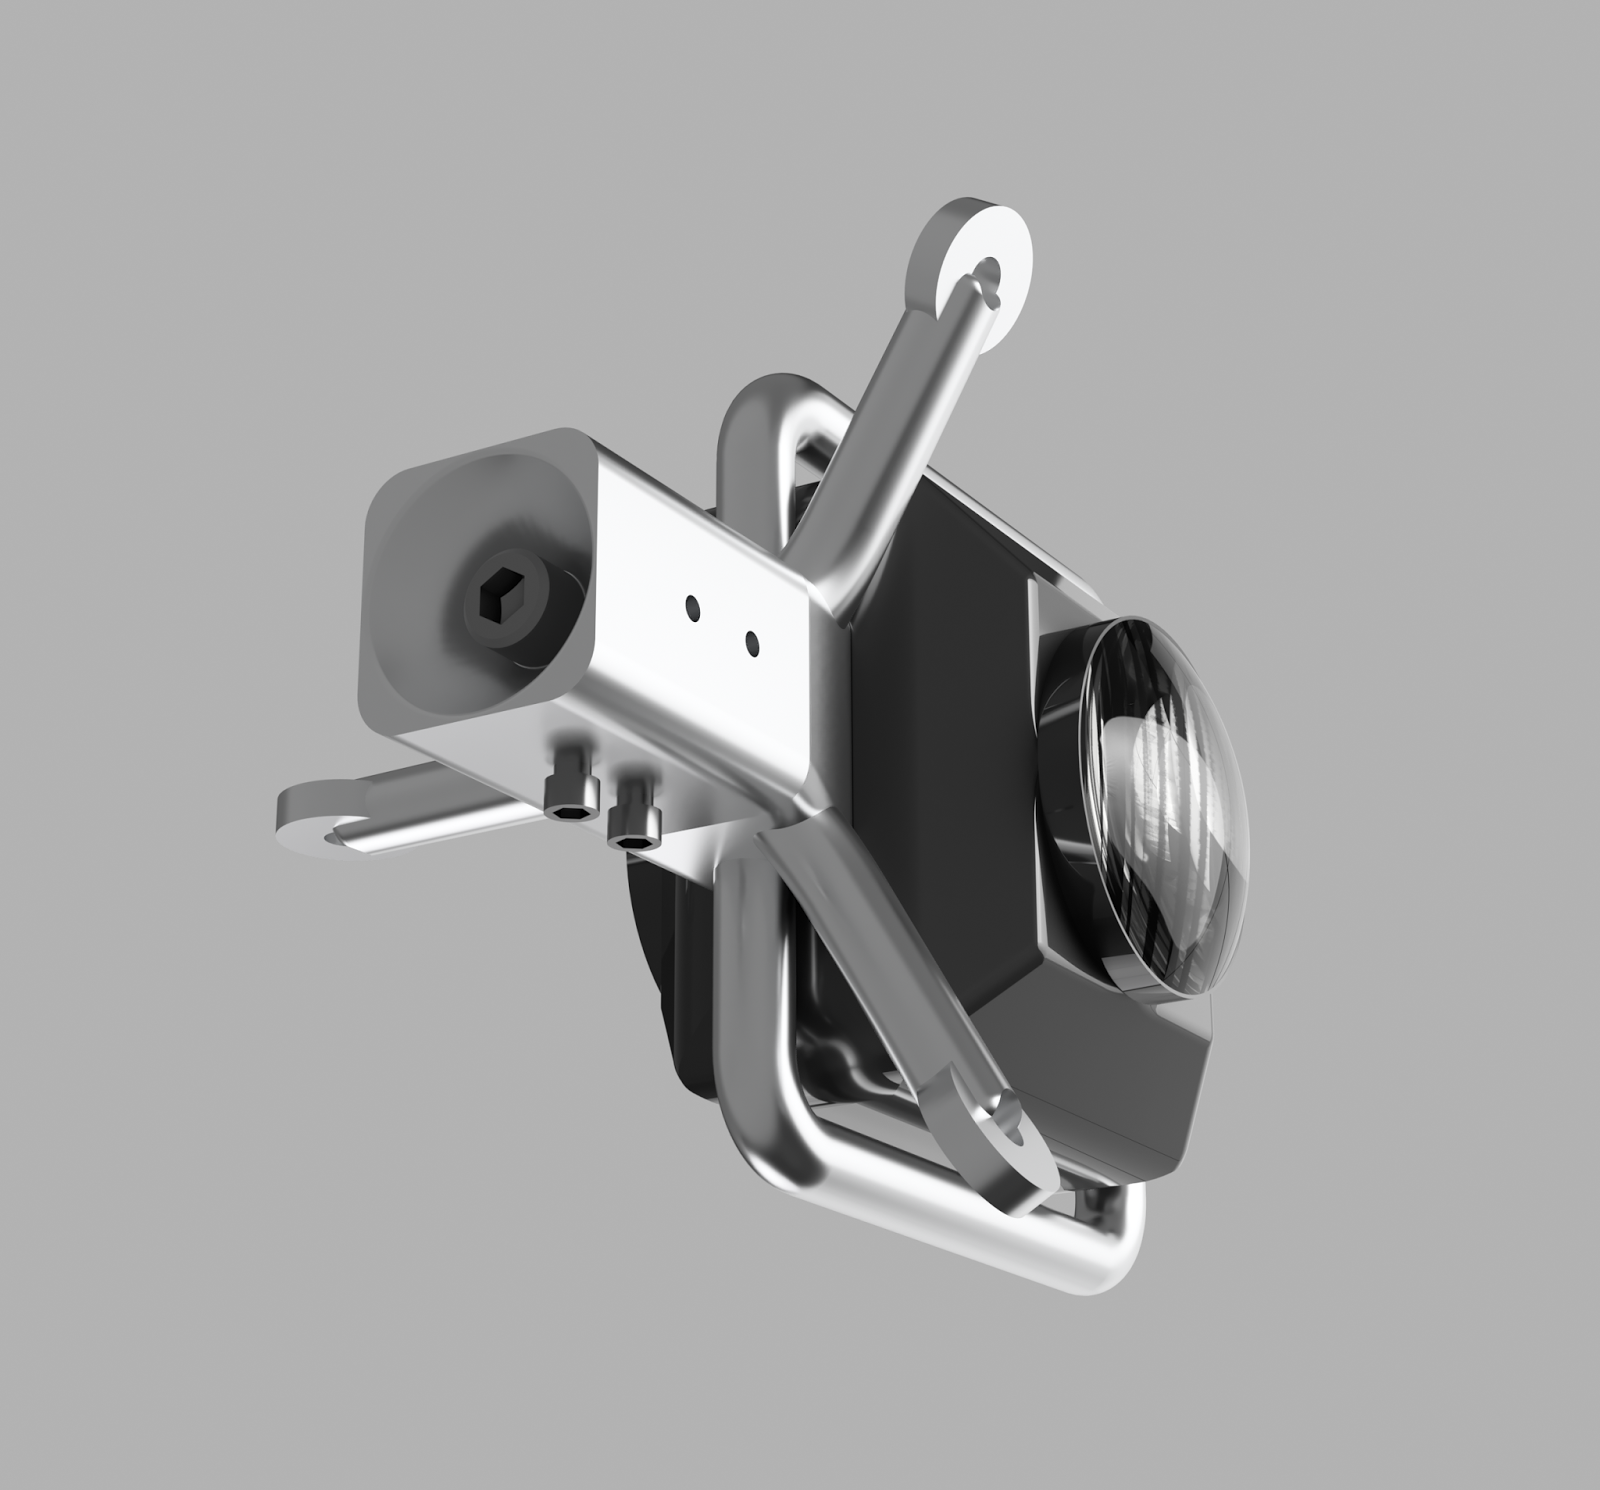 """Bottom view of tether / camera assembly showing blind insertion cone for 1/4""""-20 bolt."""